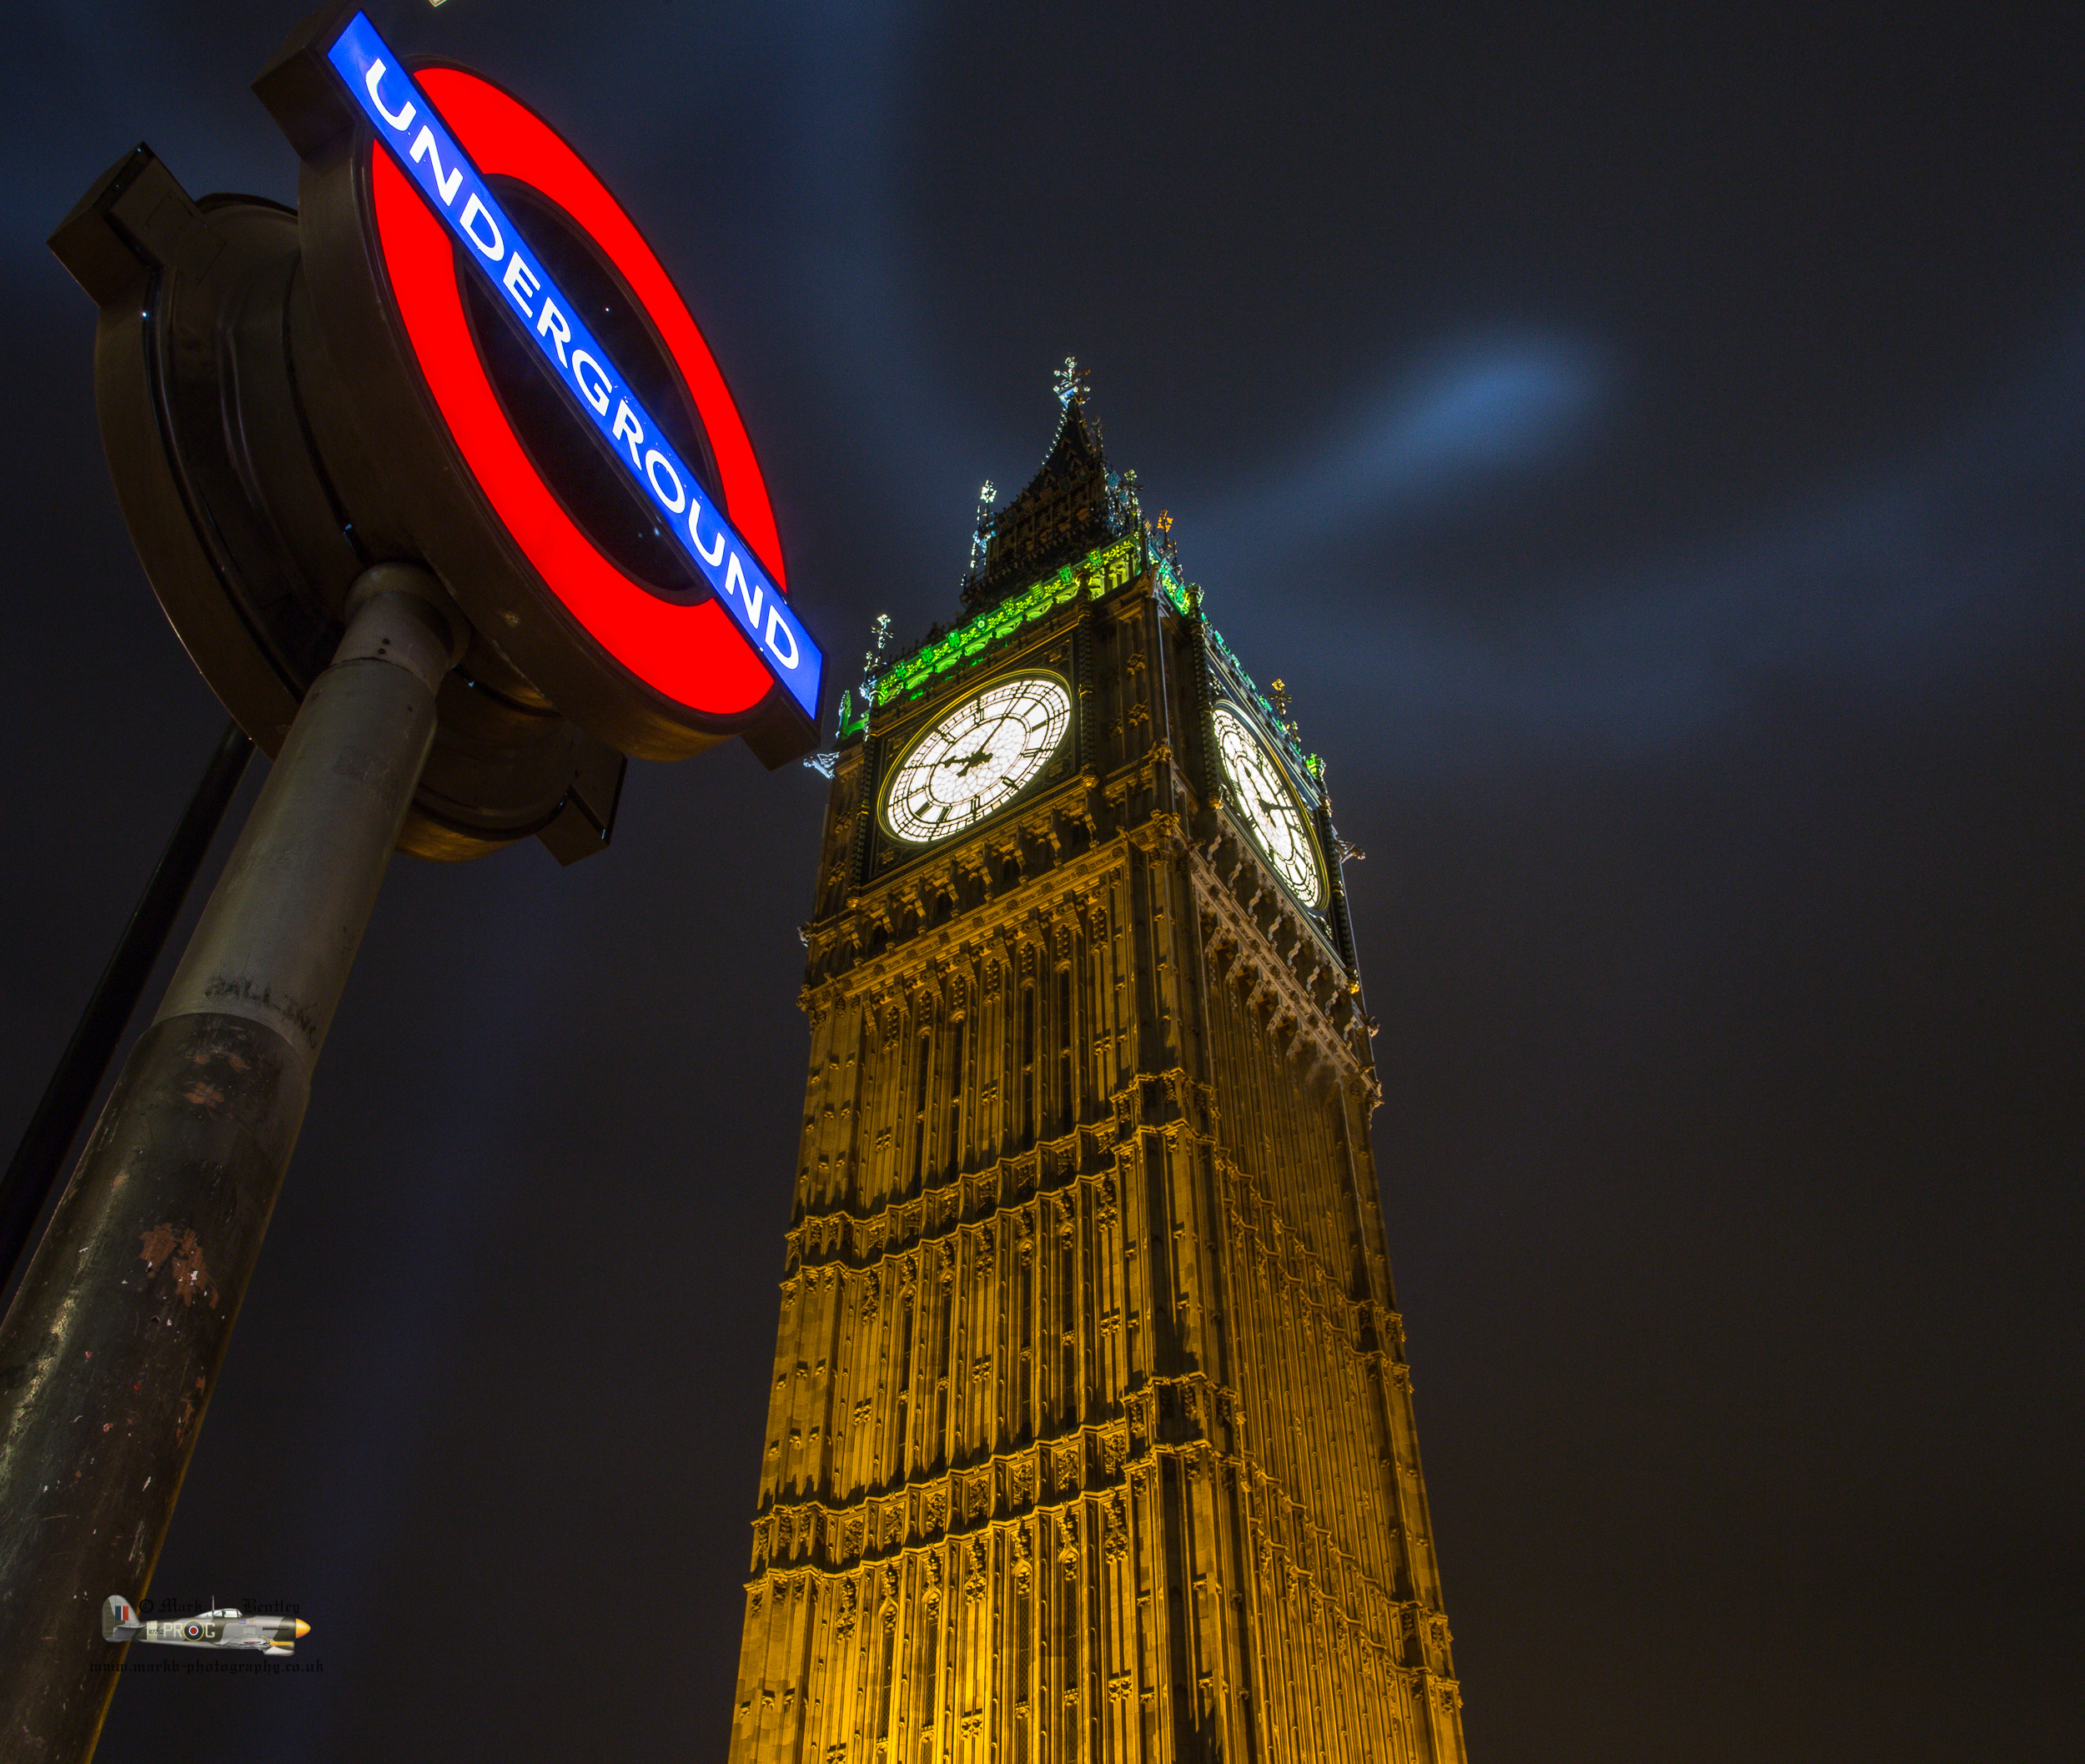 VE Day London May 8th 2015